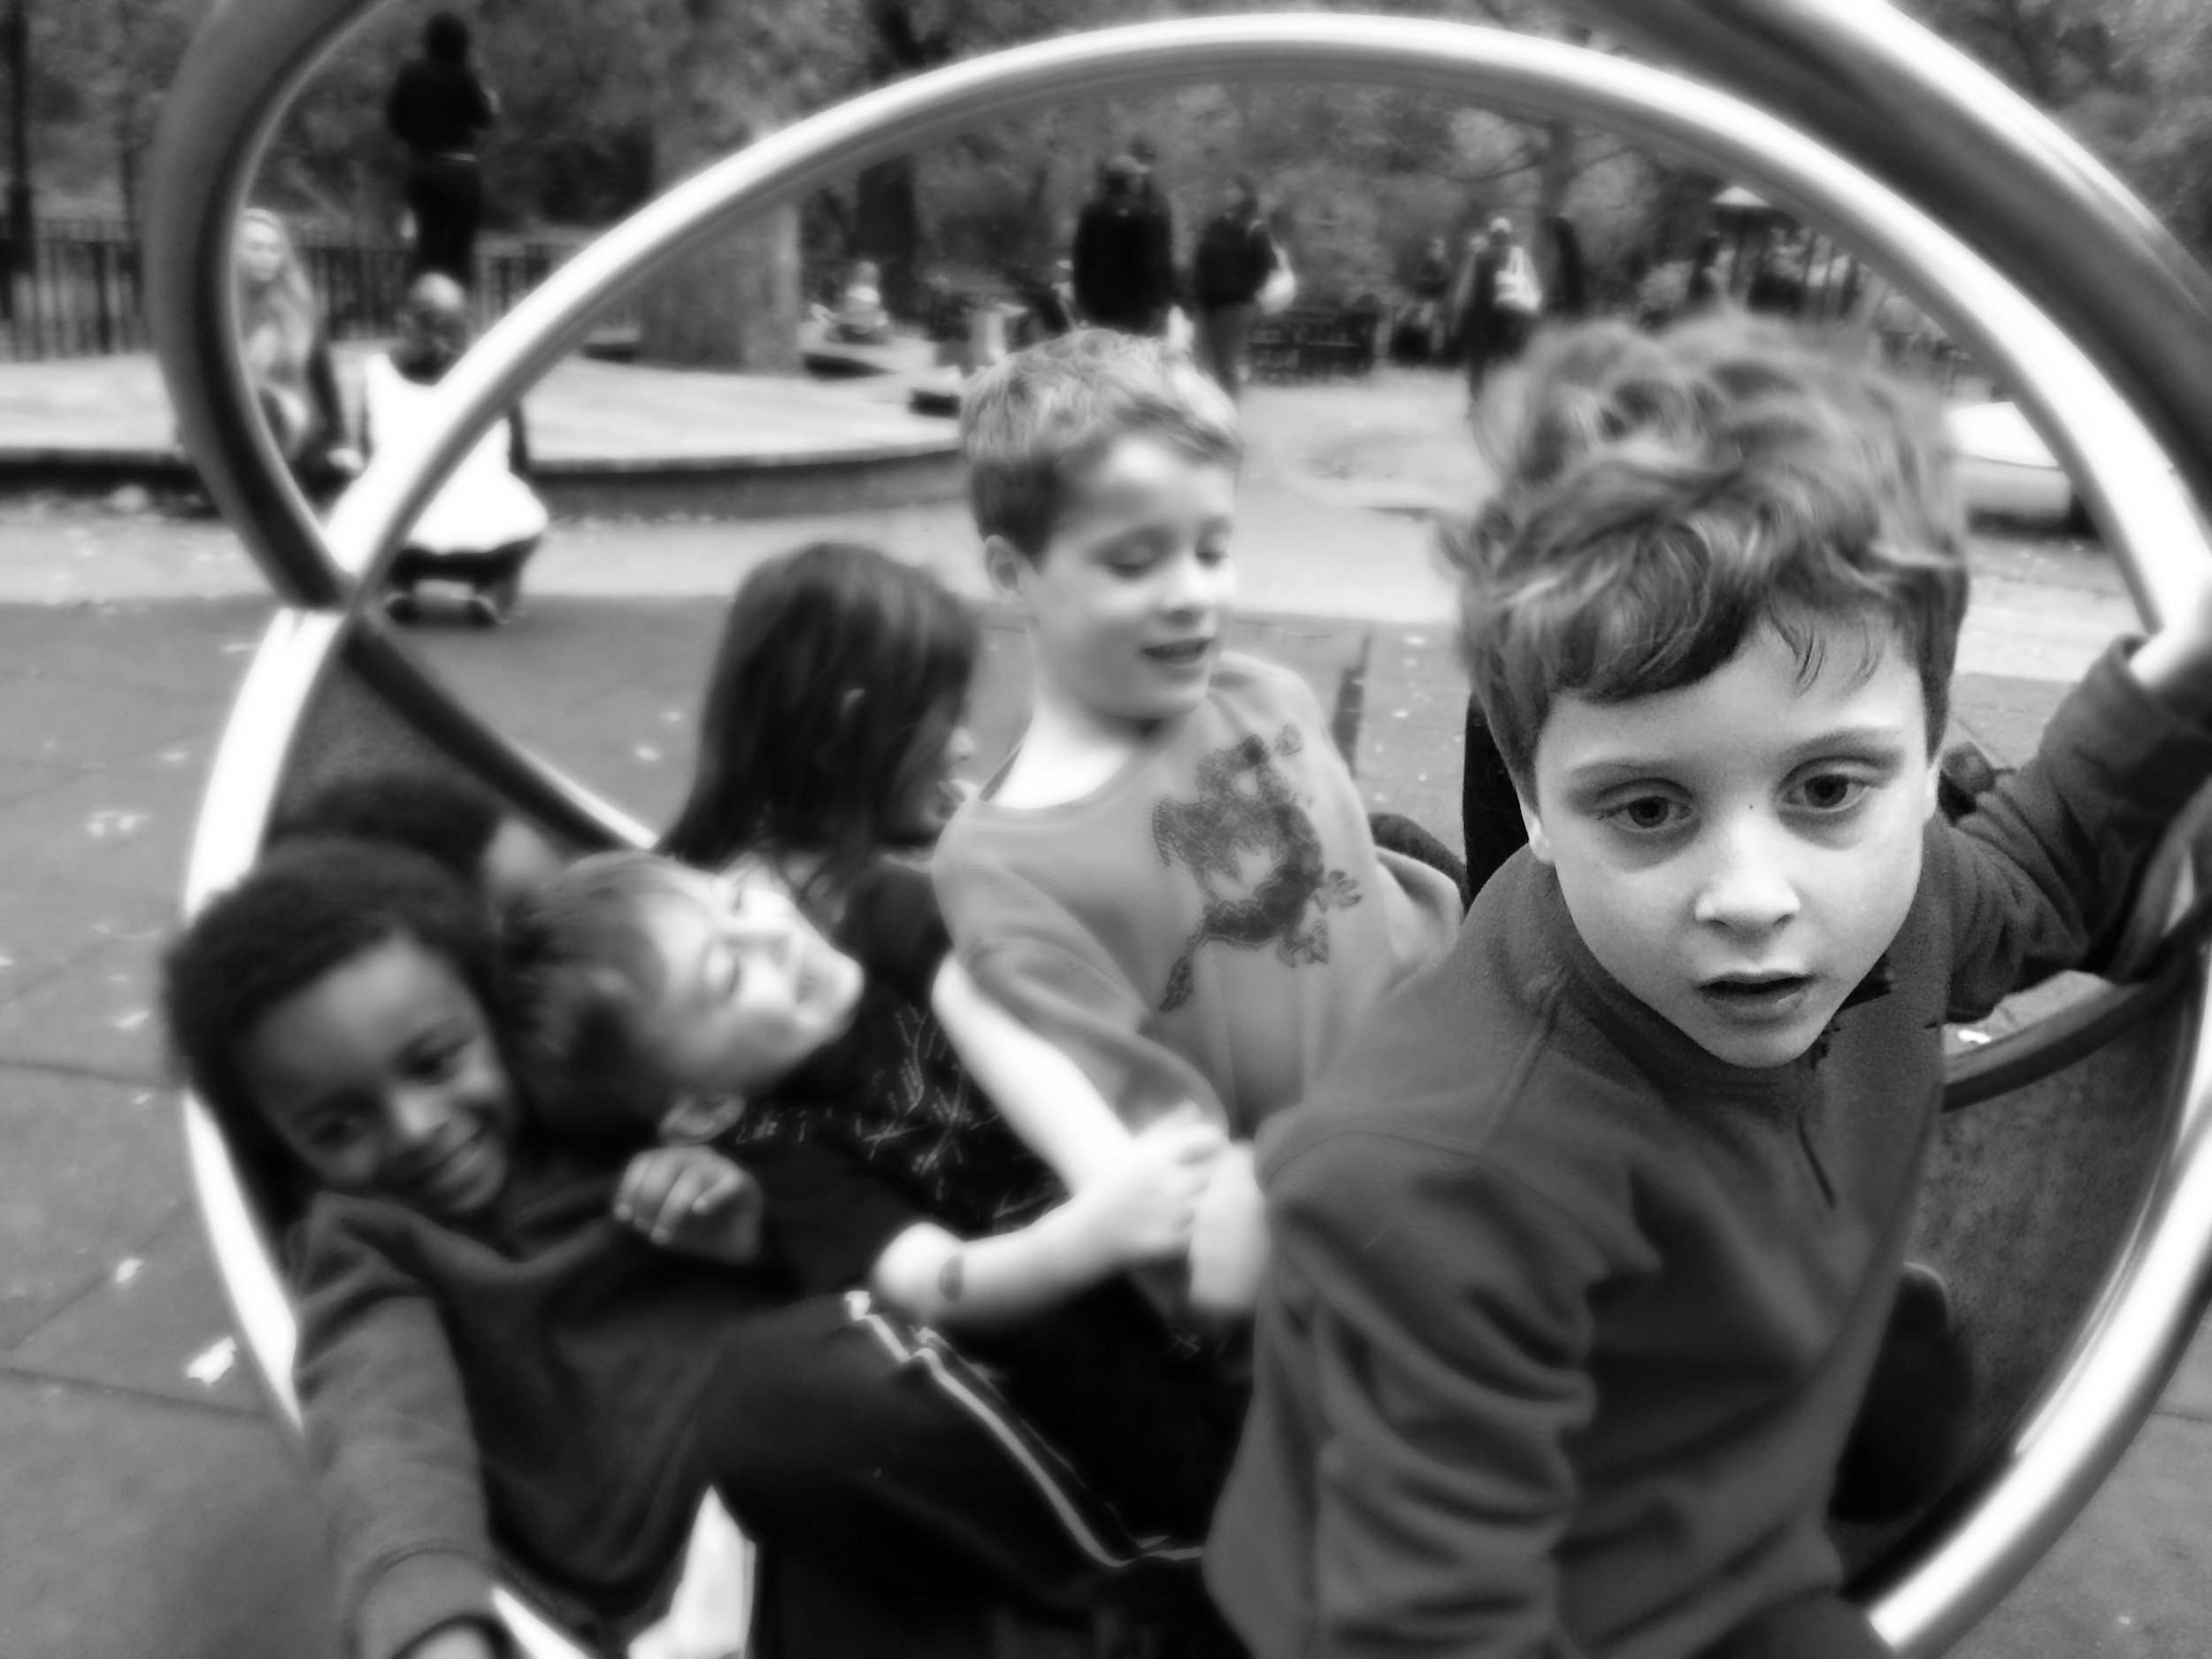 C in a playground with other children